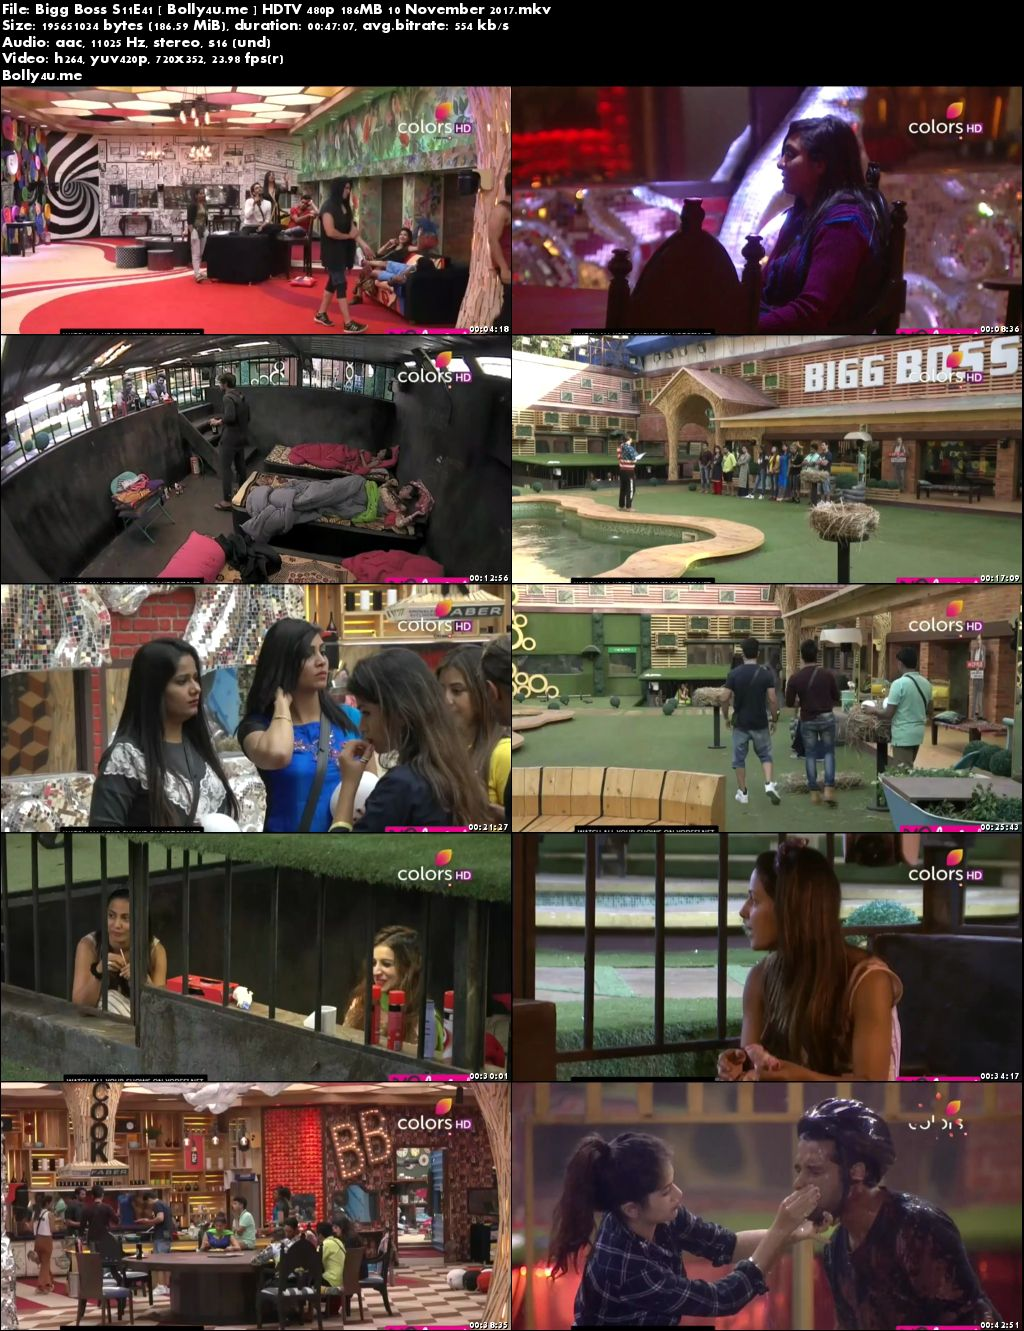 Bigg Boss S11E41 HDTV 480p 150MB 11 November 2017 Download